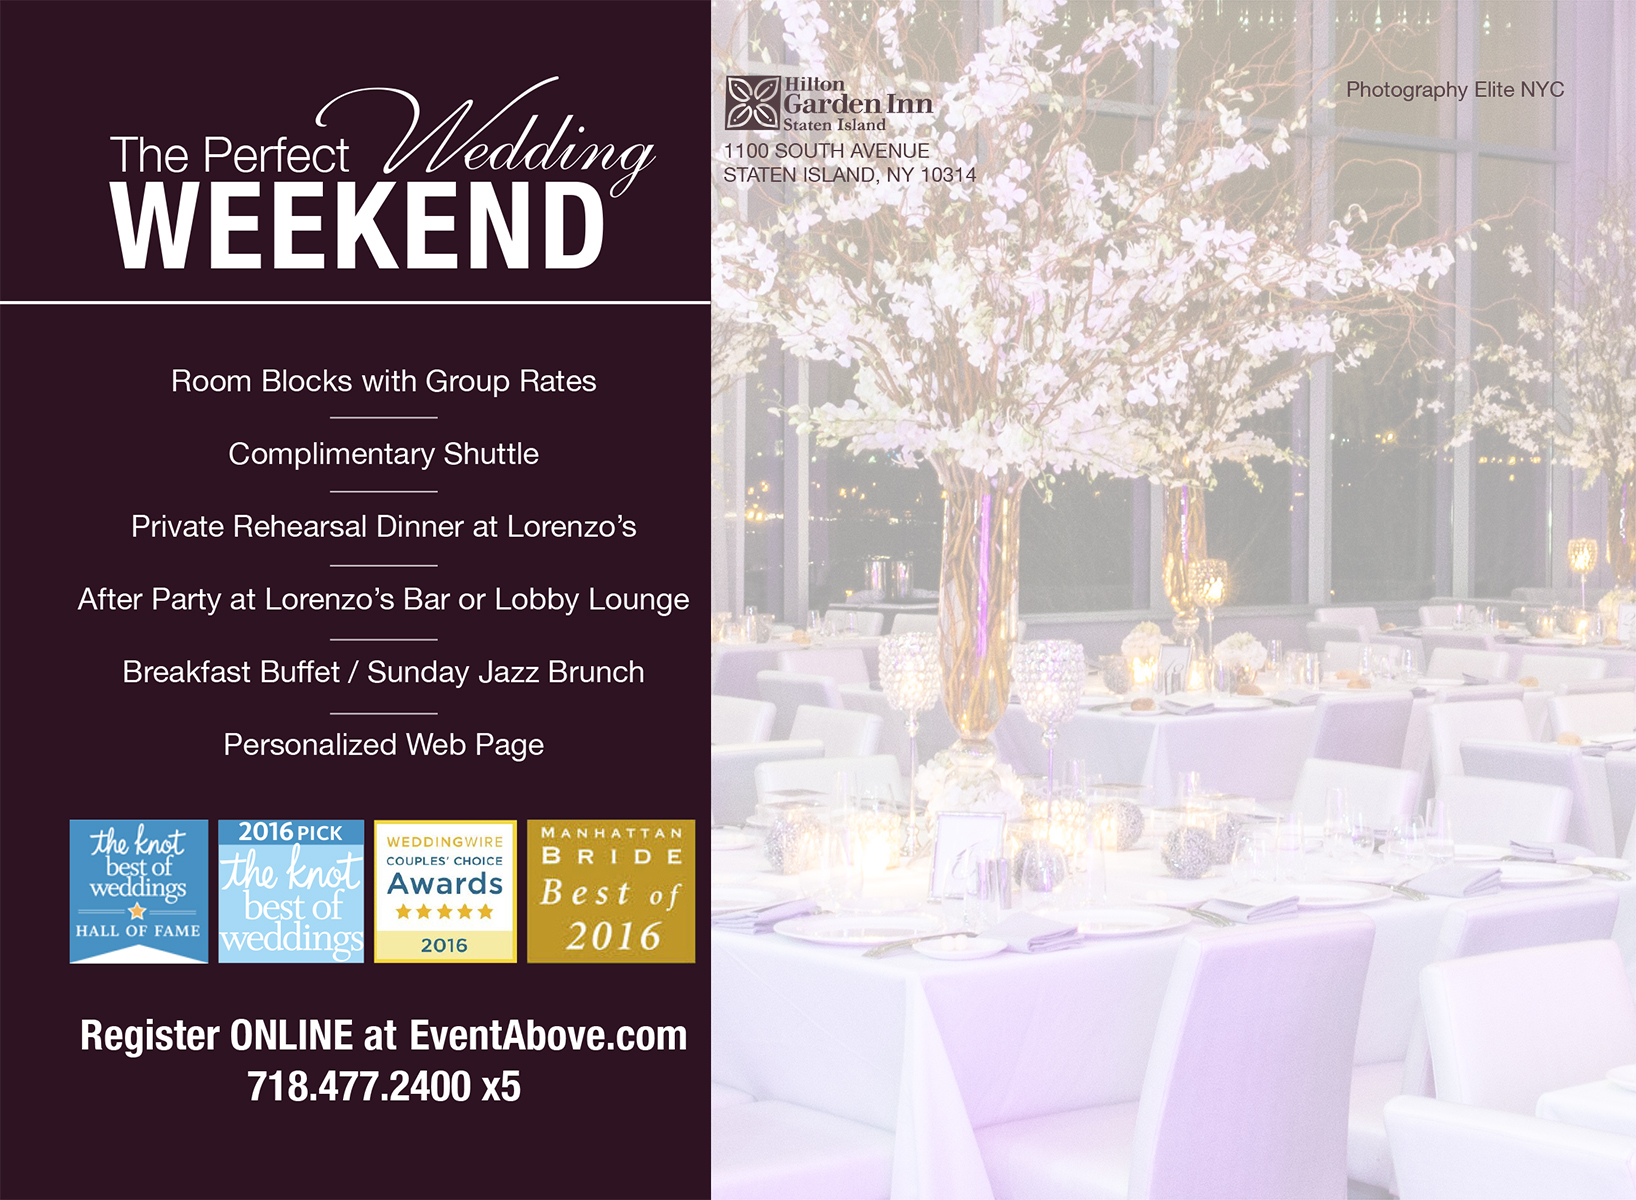 Image Of A Flyer For A Wedding Reception Venue In Staten Island, NY - Above Weddings